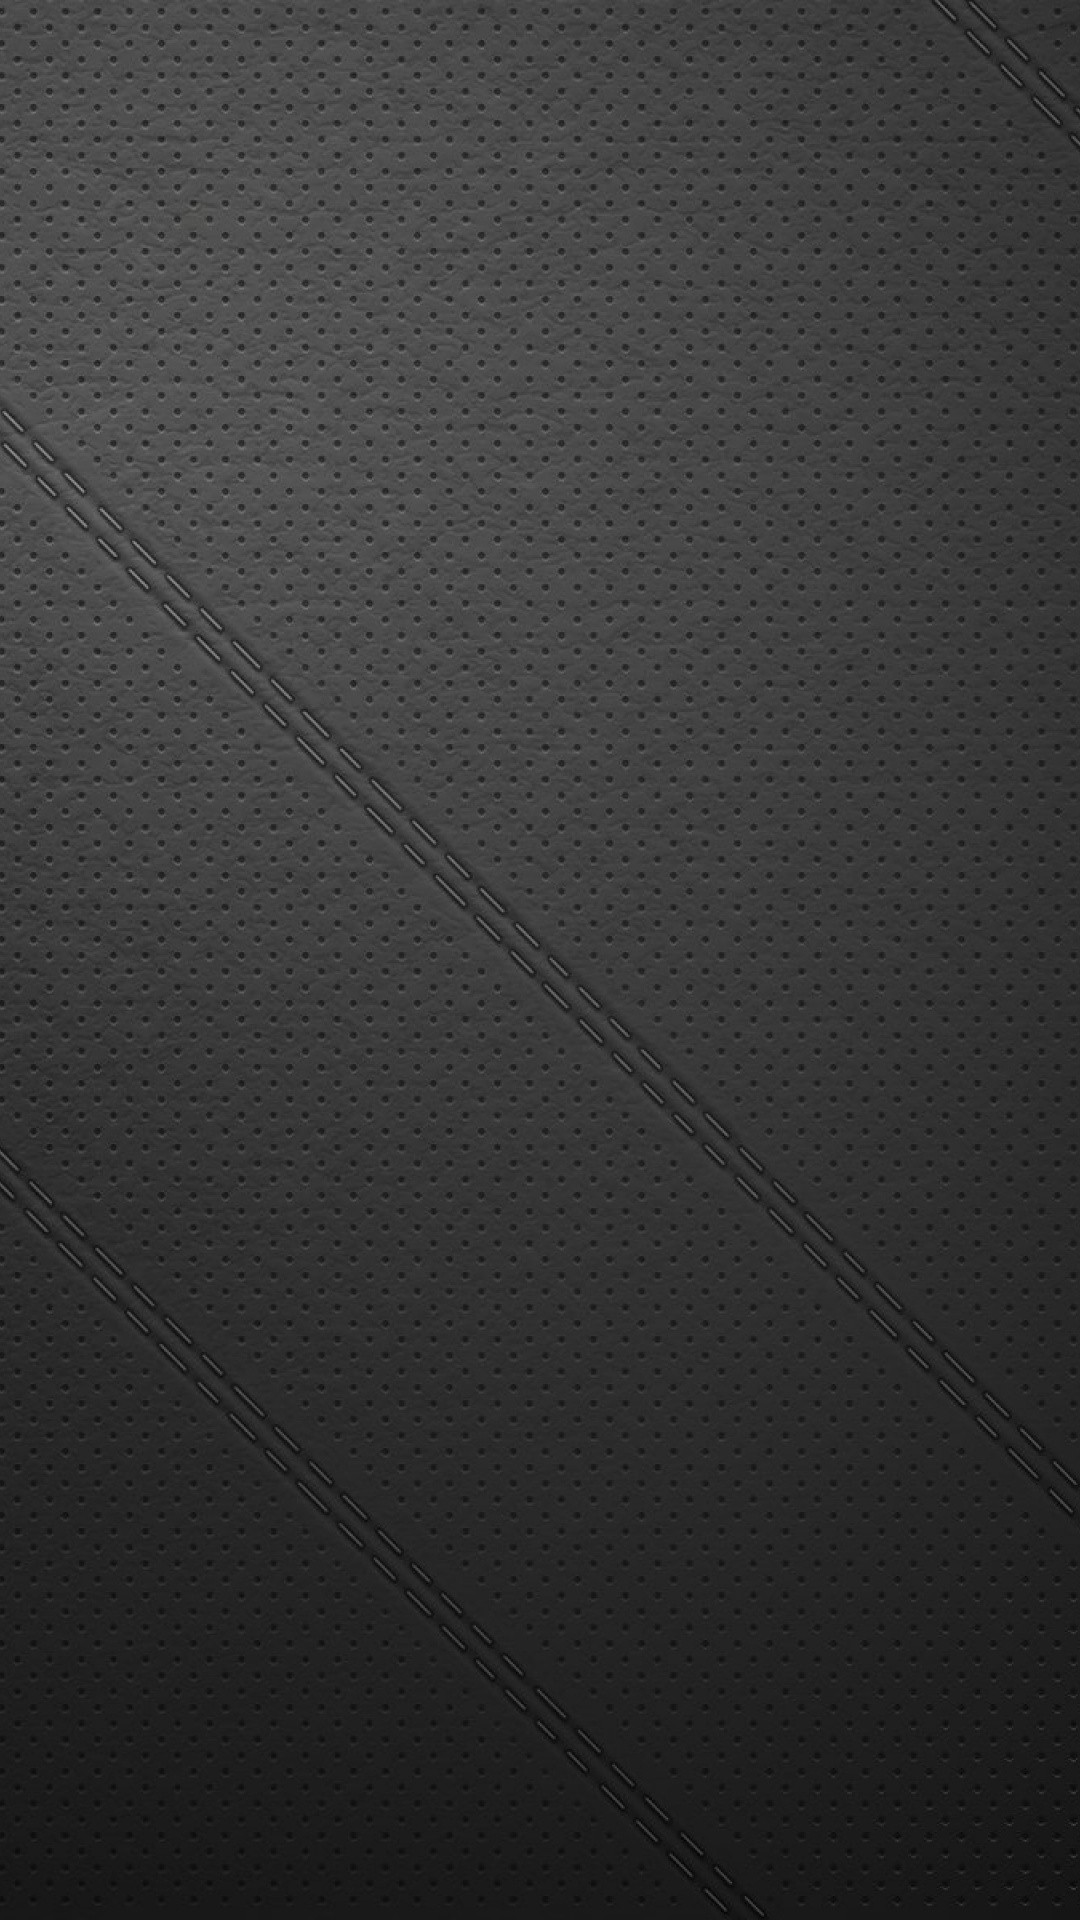 Gray iPhone 6 wallpaper